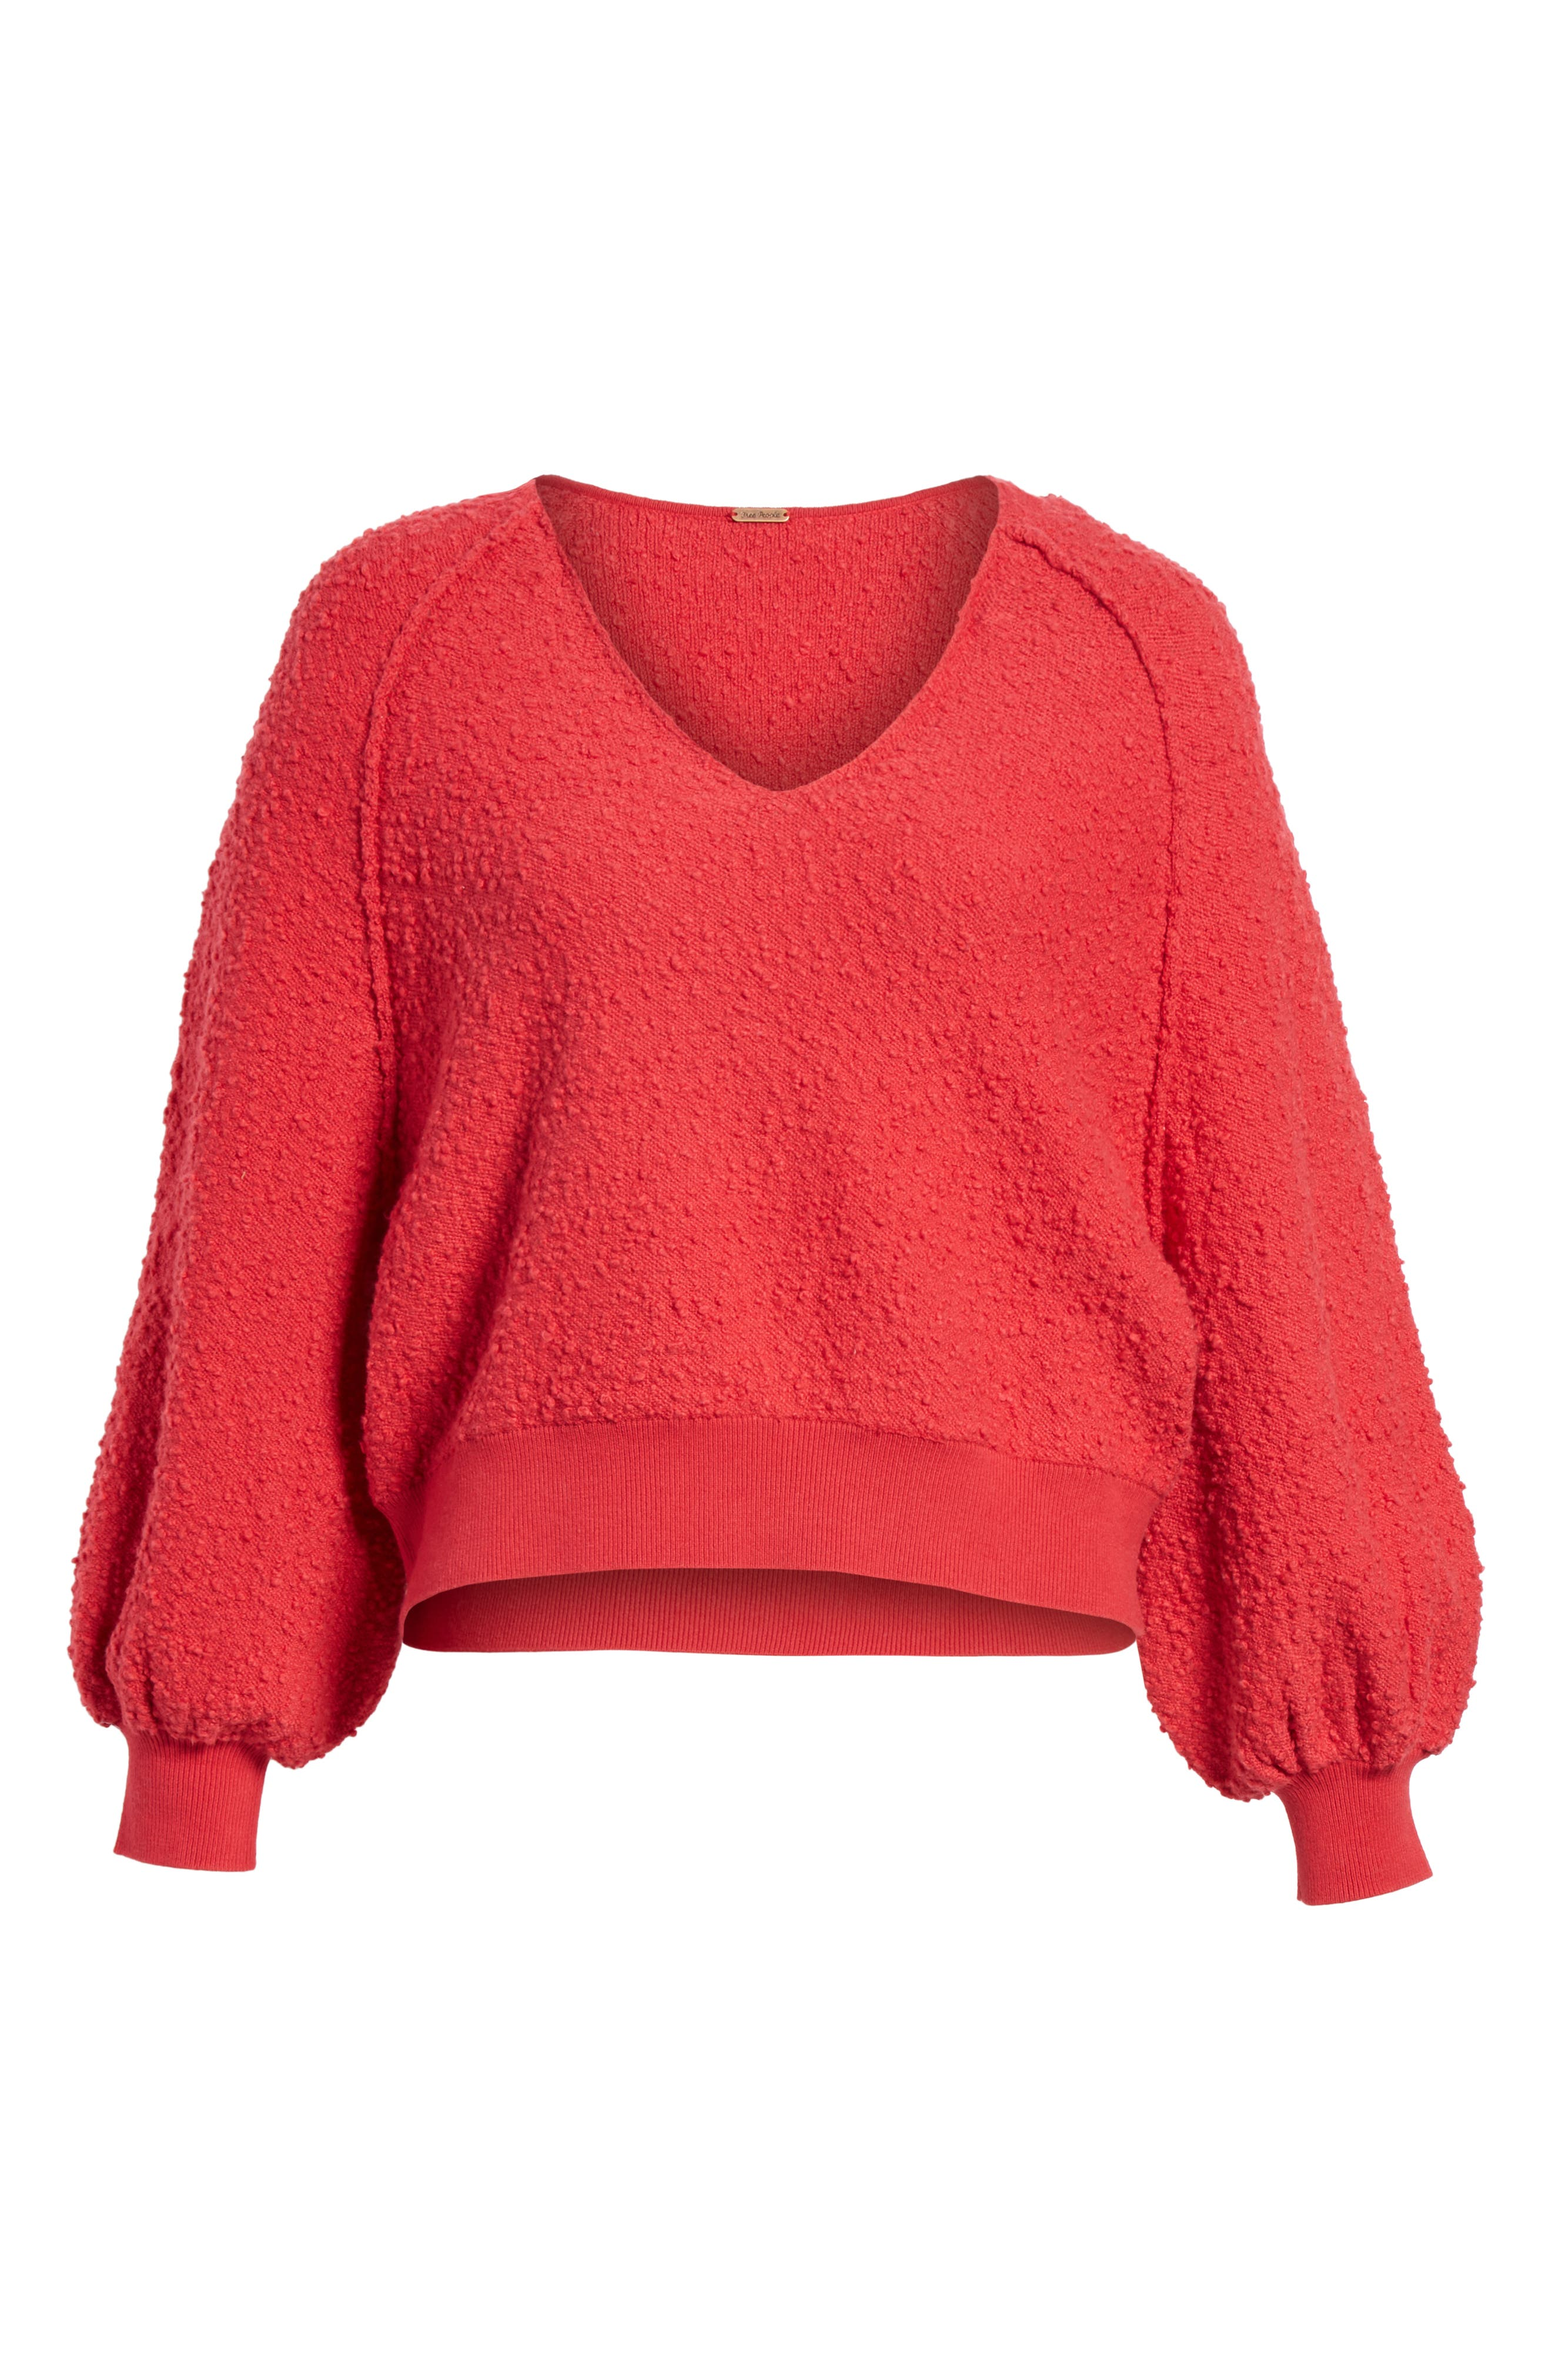 FREE PEOPLE, Found My Friend Sweater, Alternate thumbnail 6, color, 600